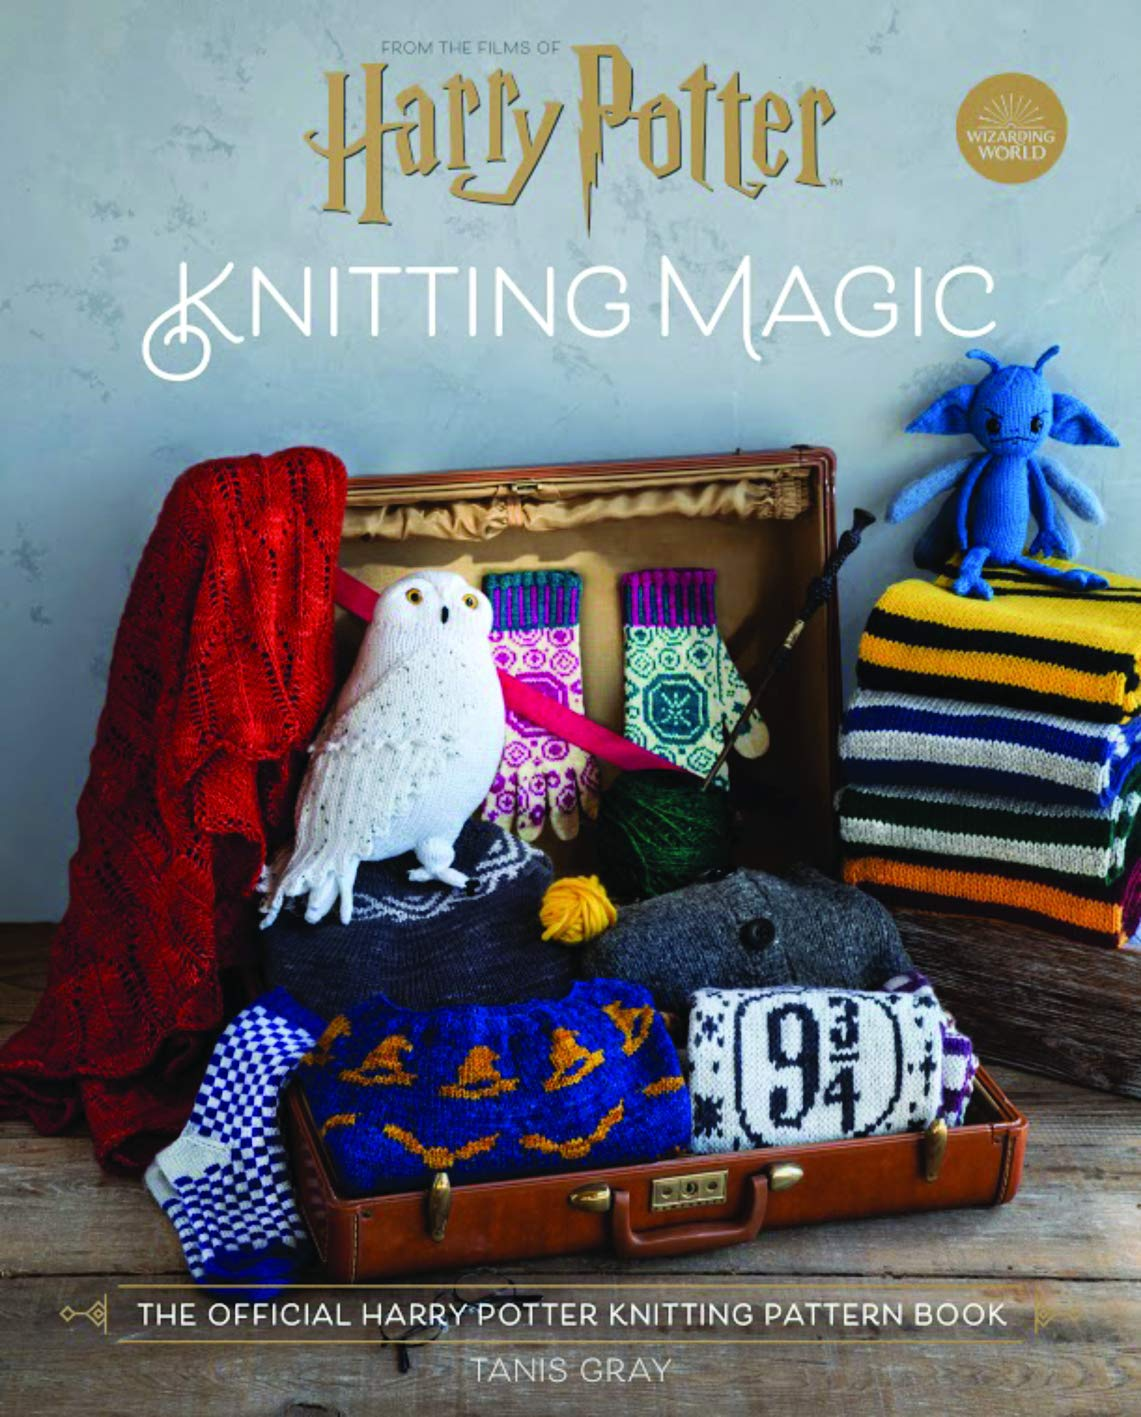 Harry Potter: Knitting Magic The Official Harry Potter Knitting Pattern Book